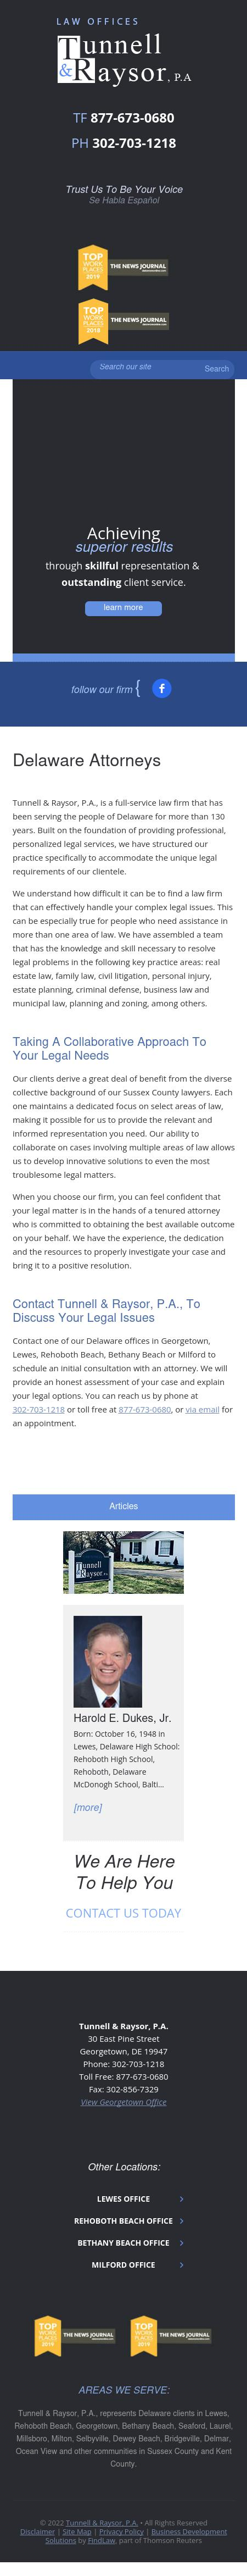 Tunnell & Raysor, P.A. - Lewes DE Lawyers